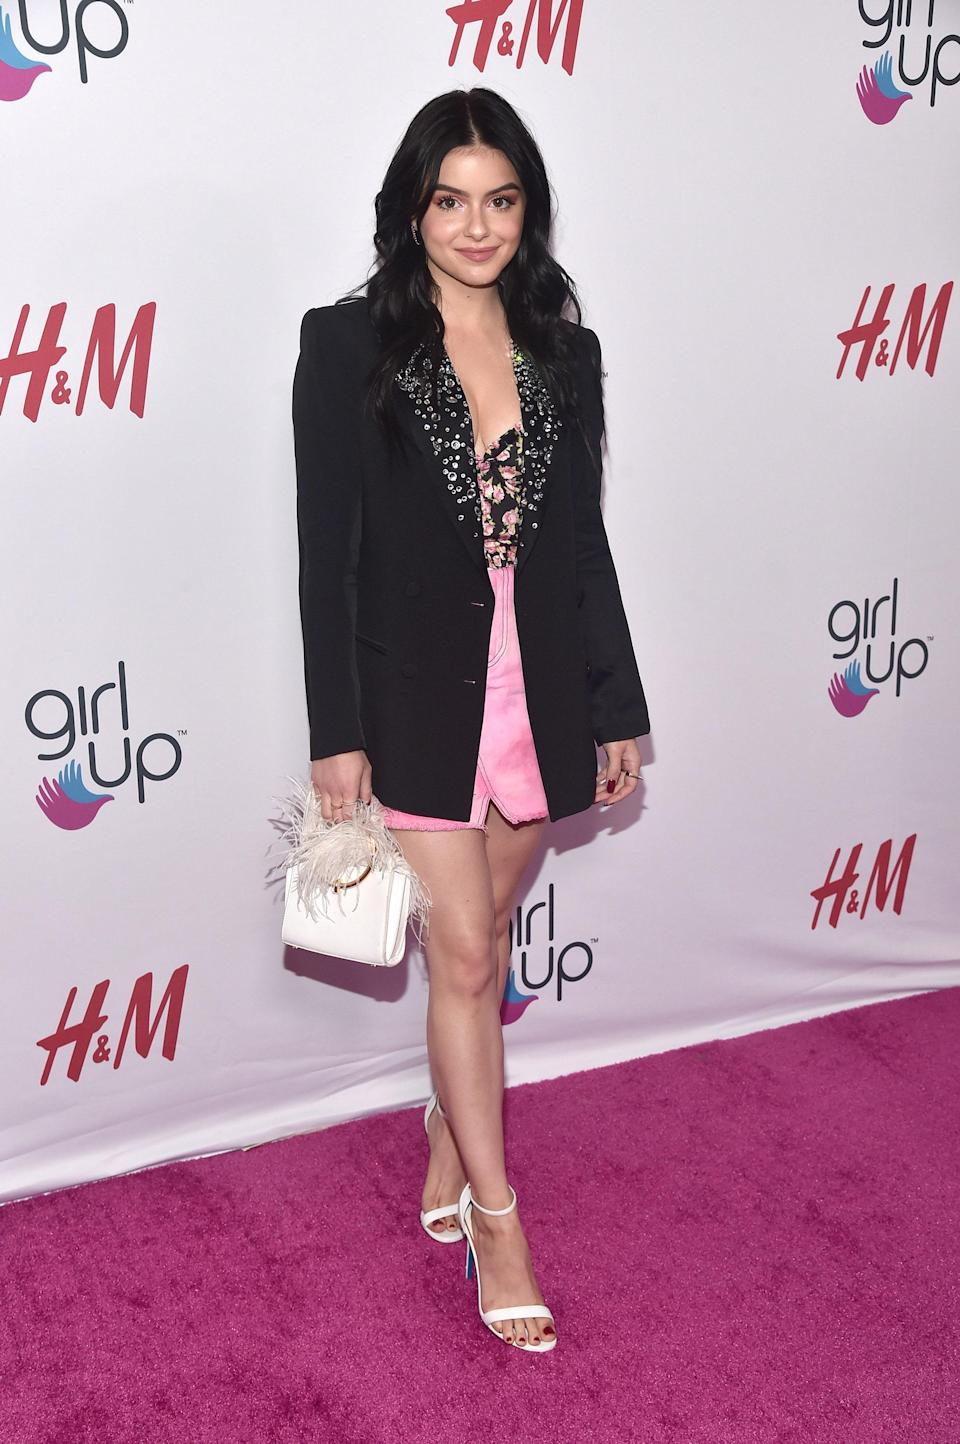 We seriously can't get enough of Ariel's pink slip-like dress, embellished blazer, and feathery white bag.